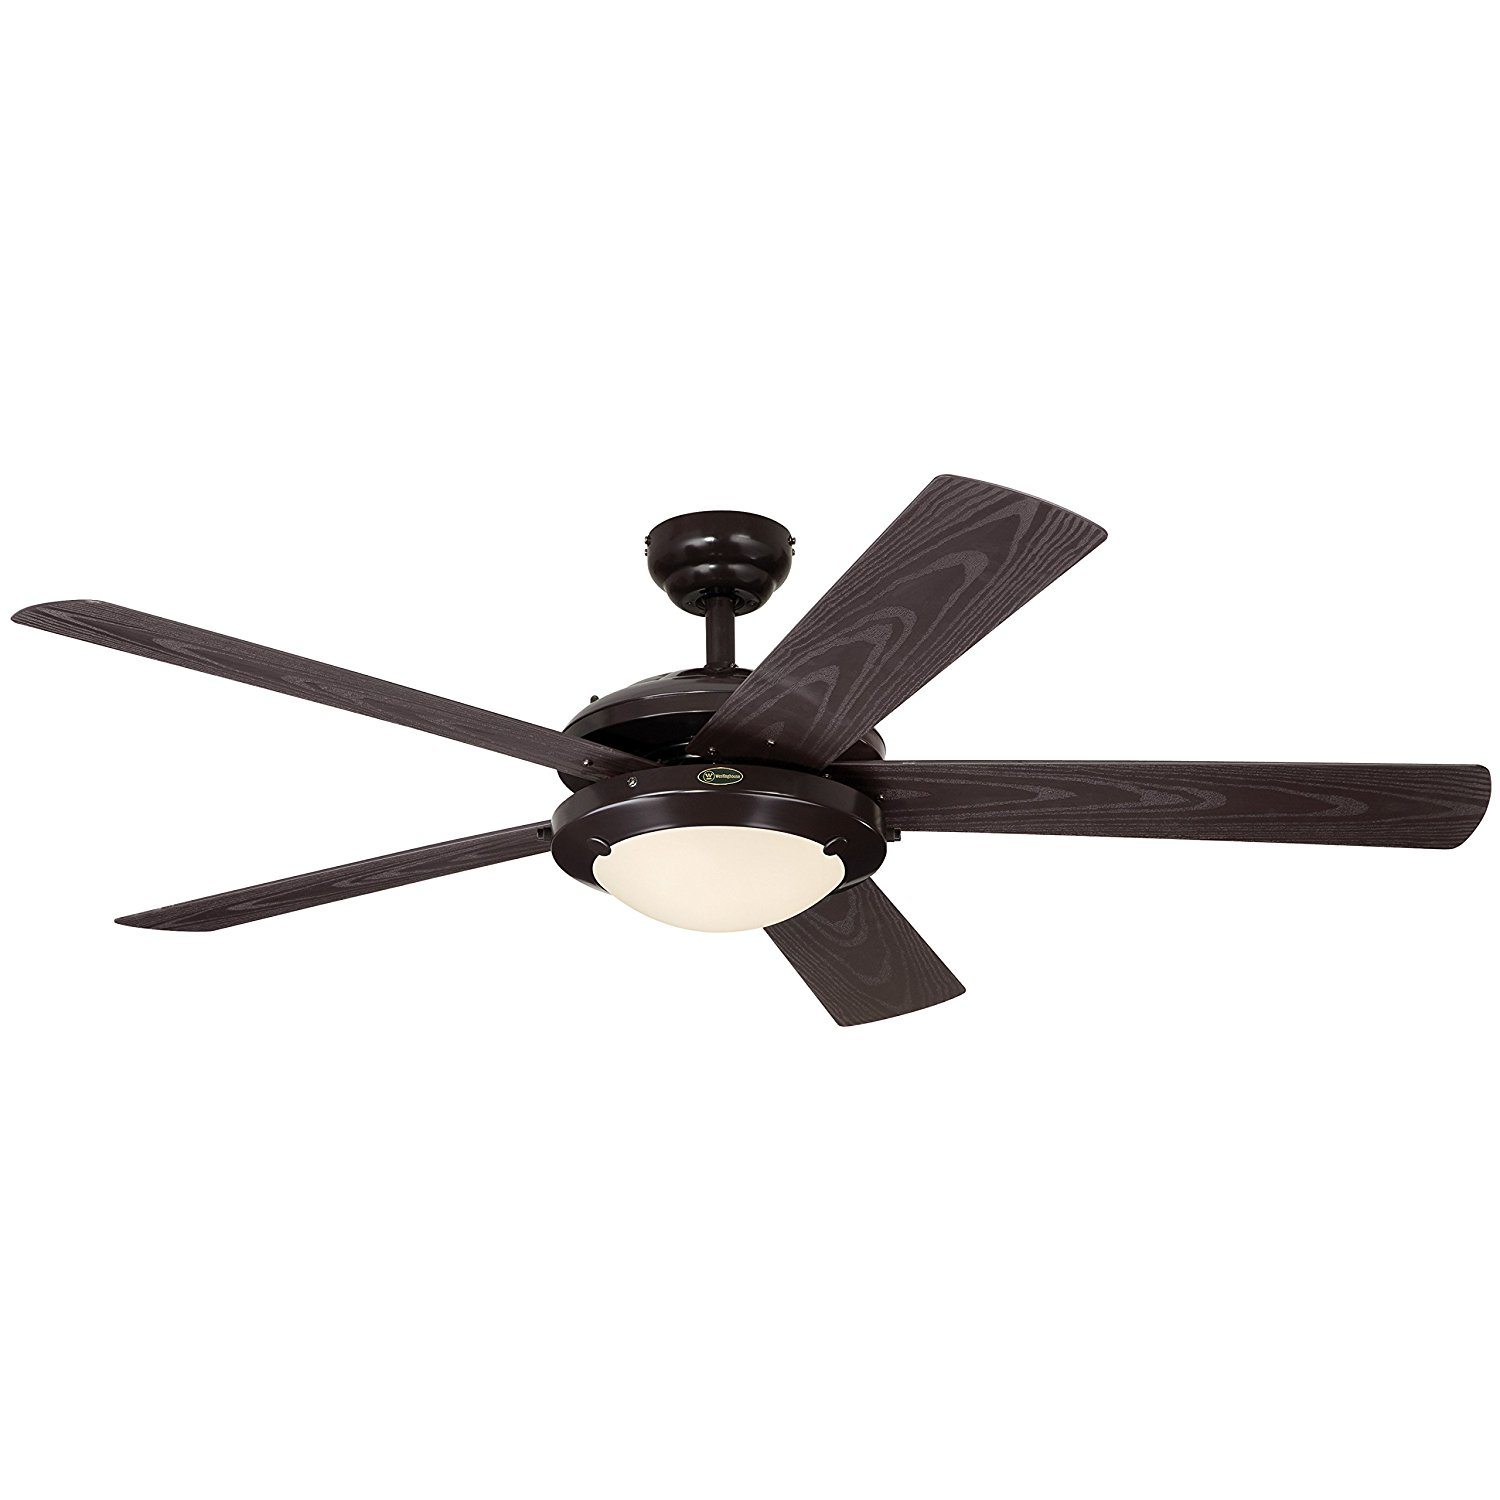 Westinghouse Comet Outdoor Ceiling Fan